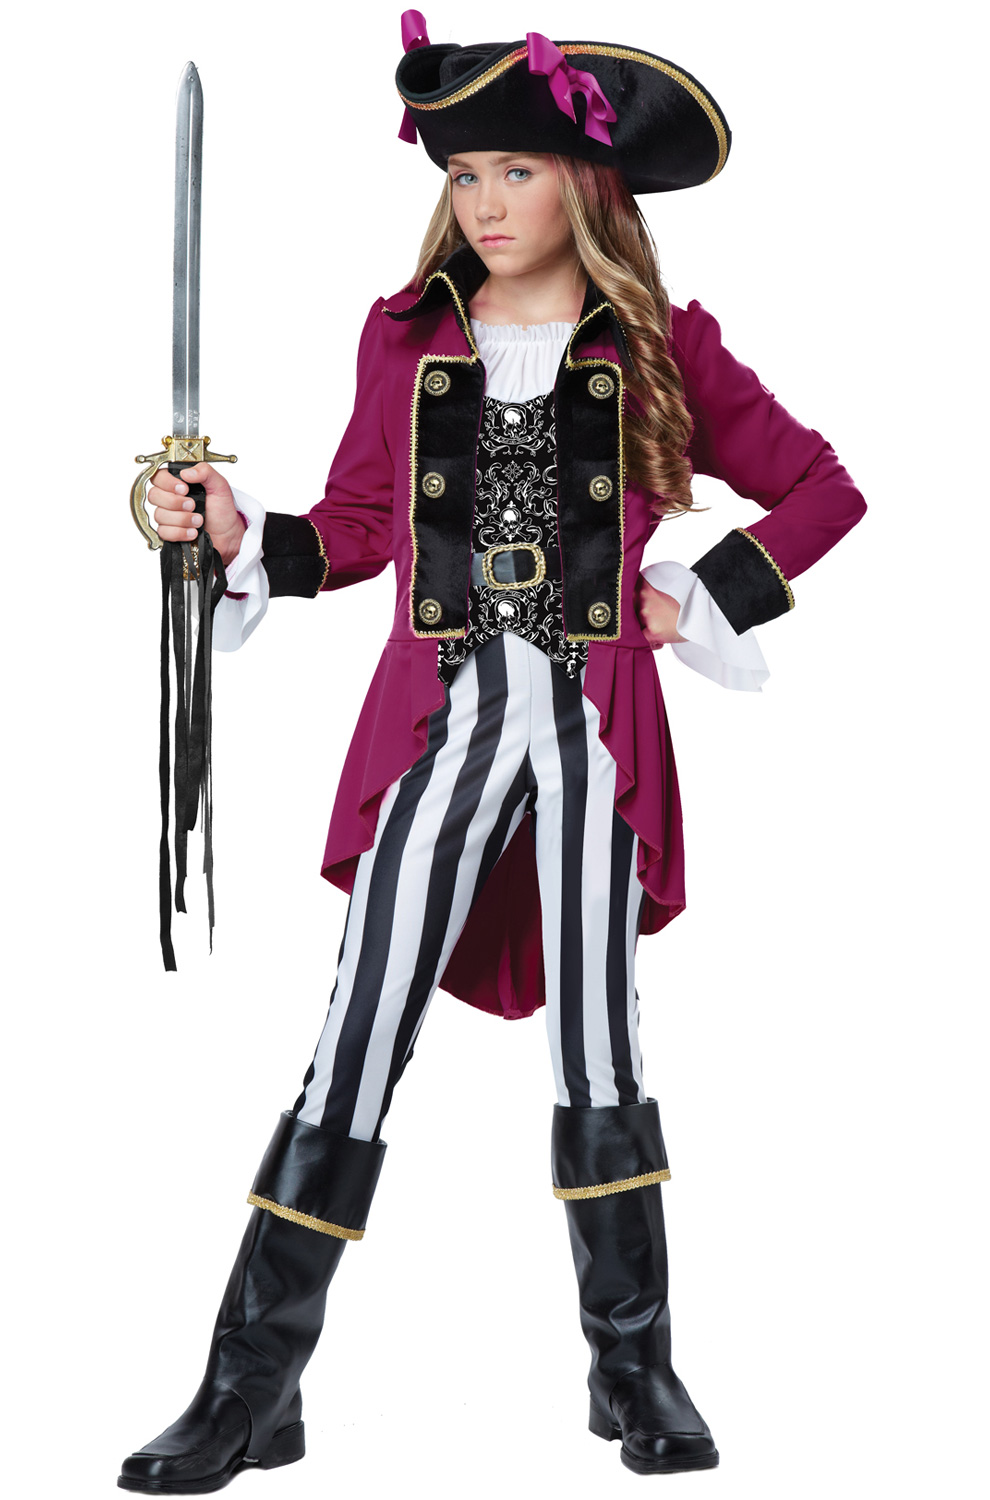 sc 1 st  Pure Costumes & Fashion Pirate Tween Costume - PureCostumes.com